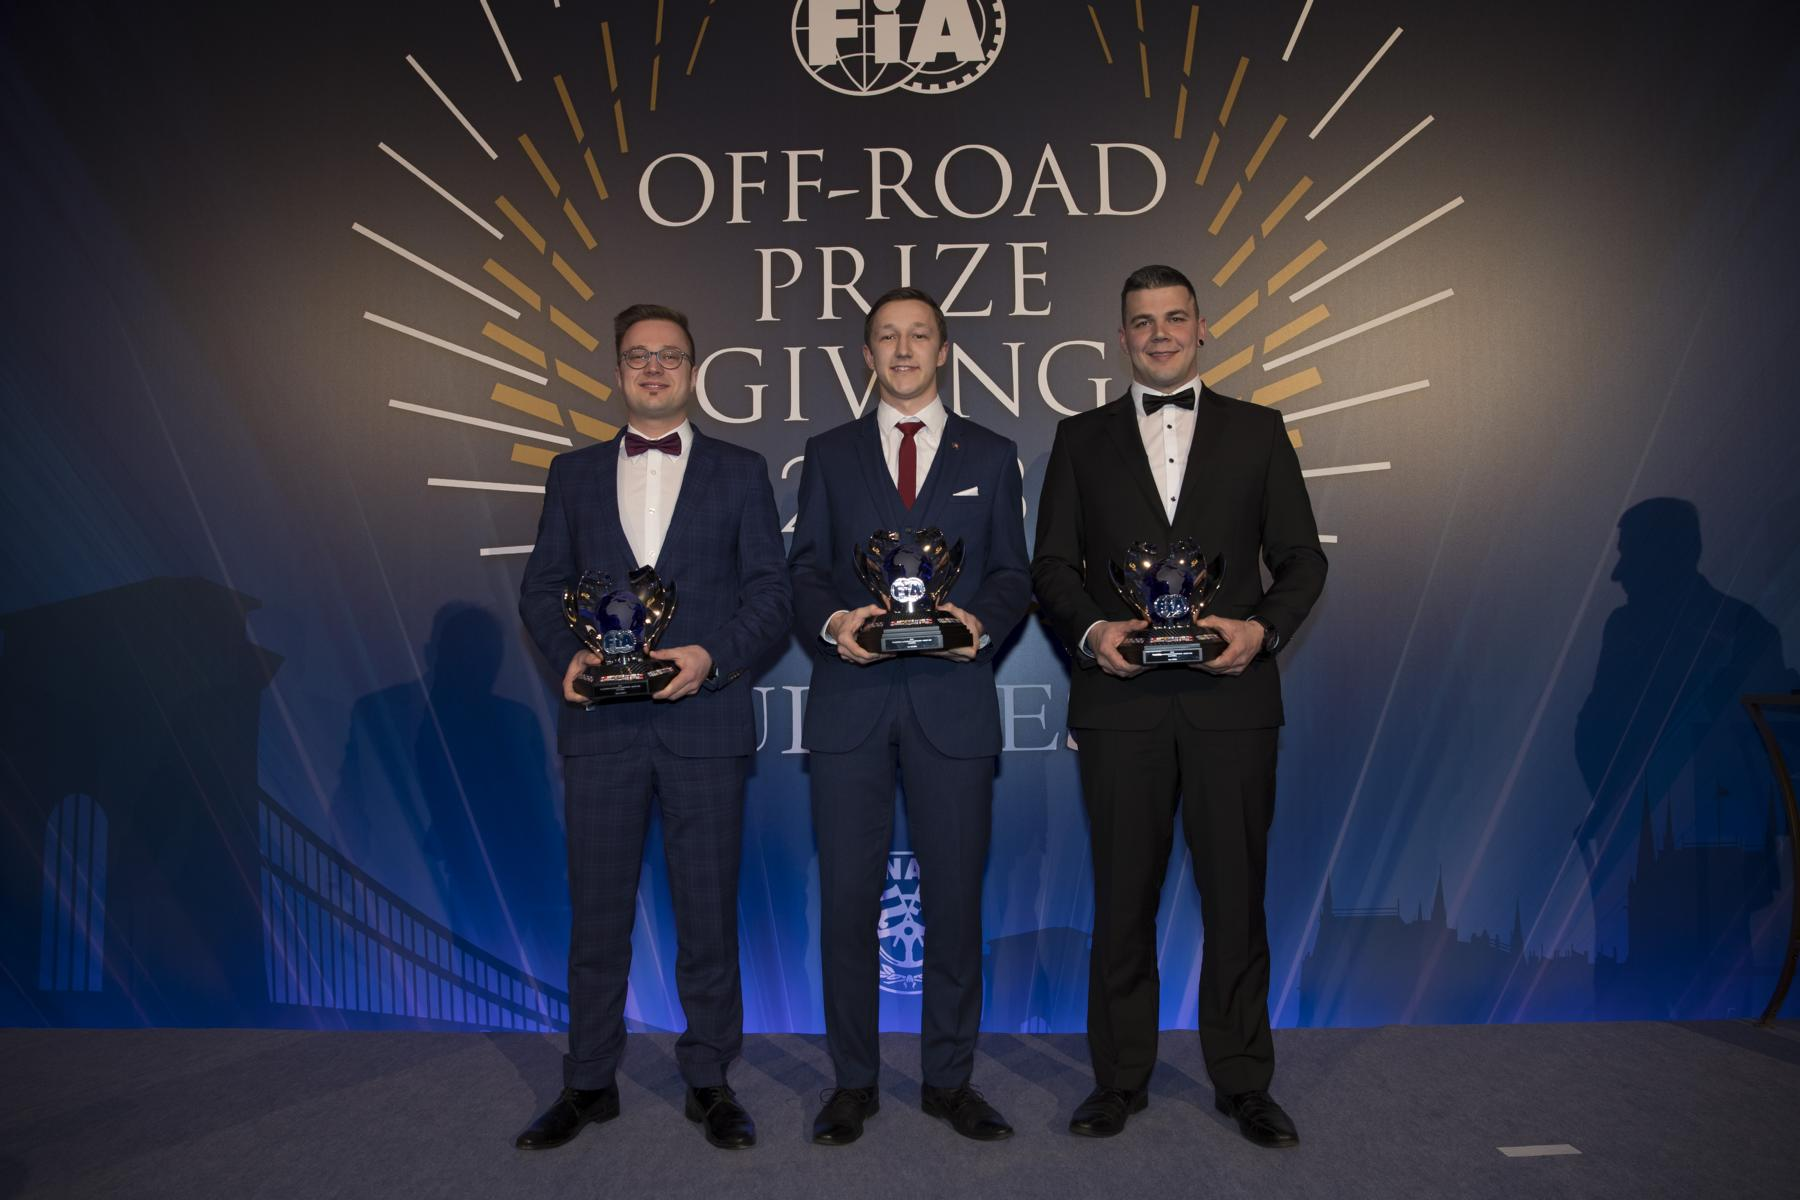 Kevin Peters, Vize Europameister, FIA European Autocross Championship Prize Giving Ceremony 2018 Budapest